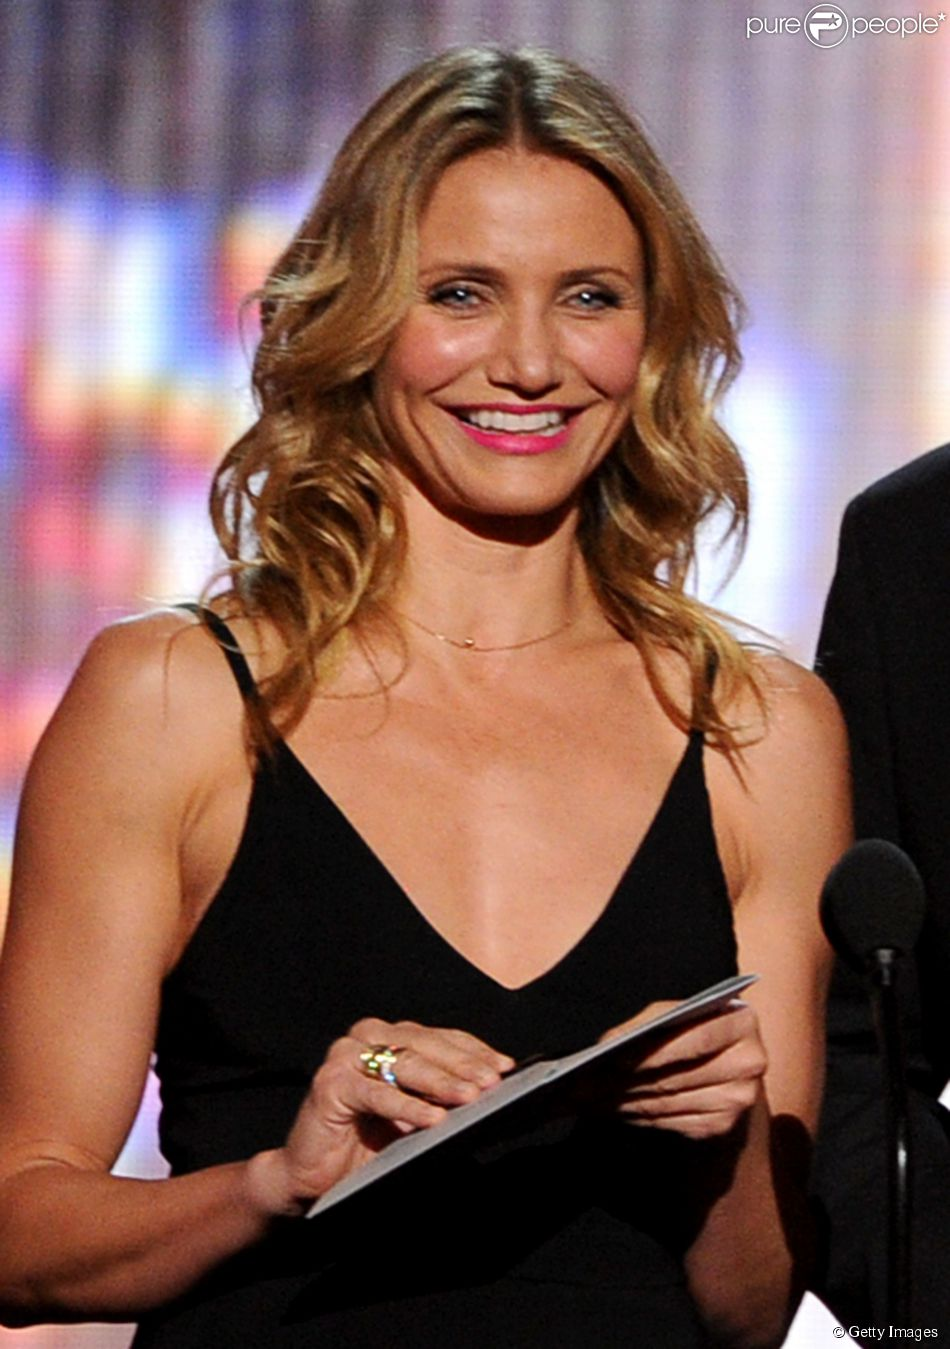 cameron diaz usa adesivo em cenas de sexo de filme 39 n o sou atriz porn 39 purepeople. Black Bedroom Furniture Sets. Home Design Ideas